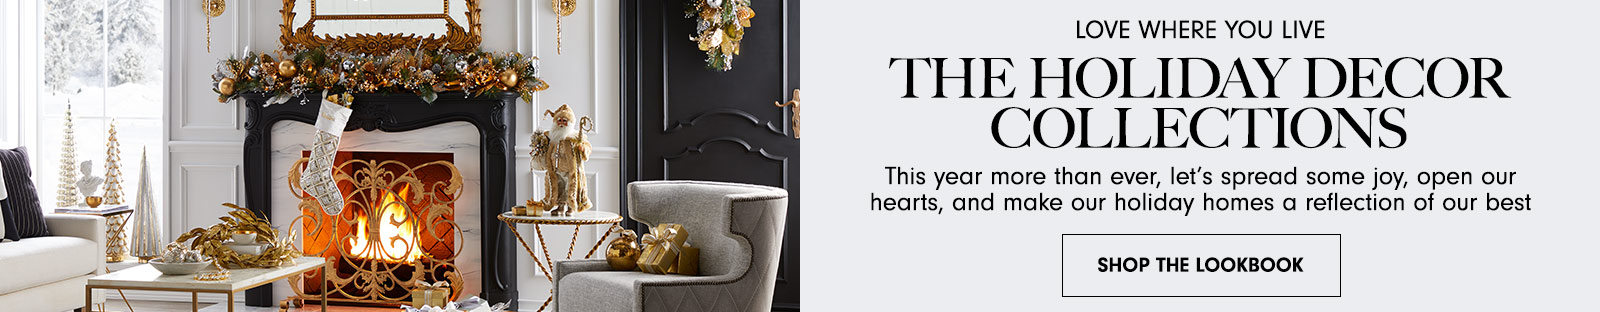 The Holiday Decor Collections - Shop The Lookbook